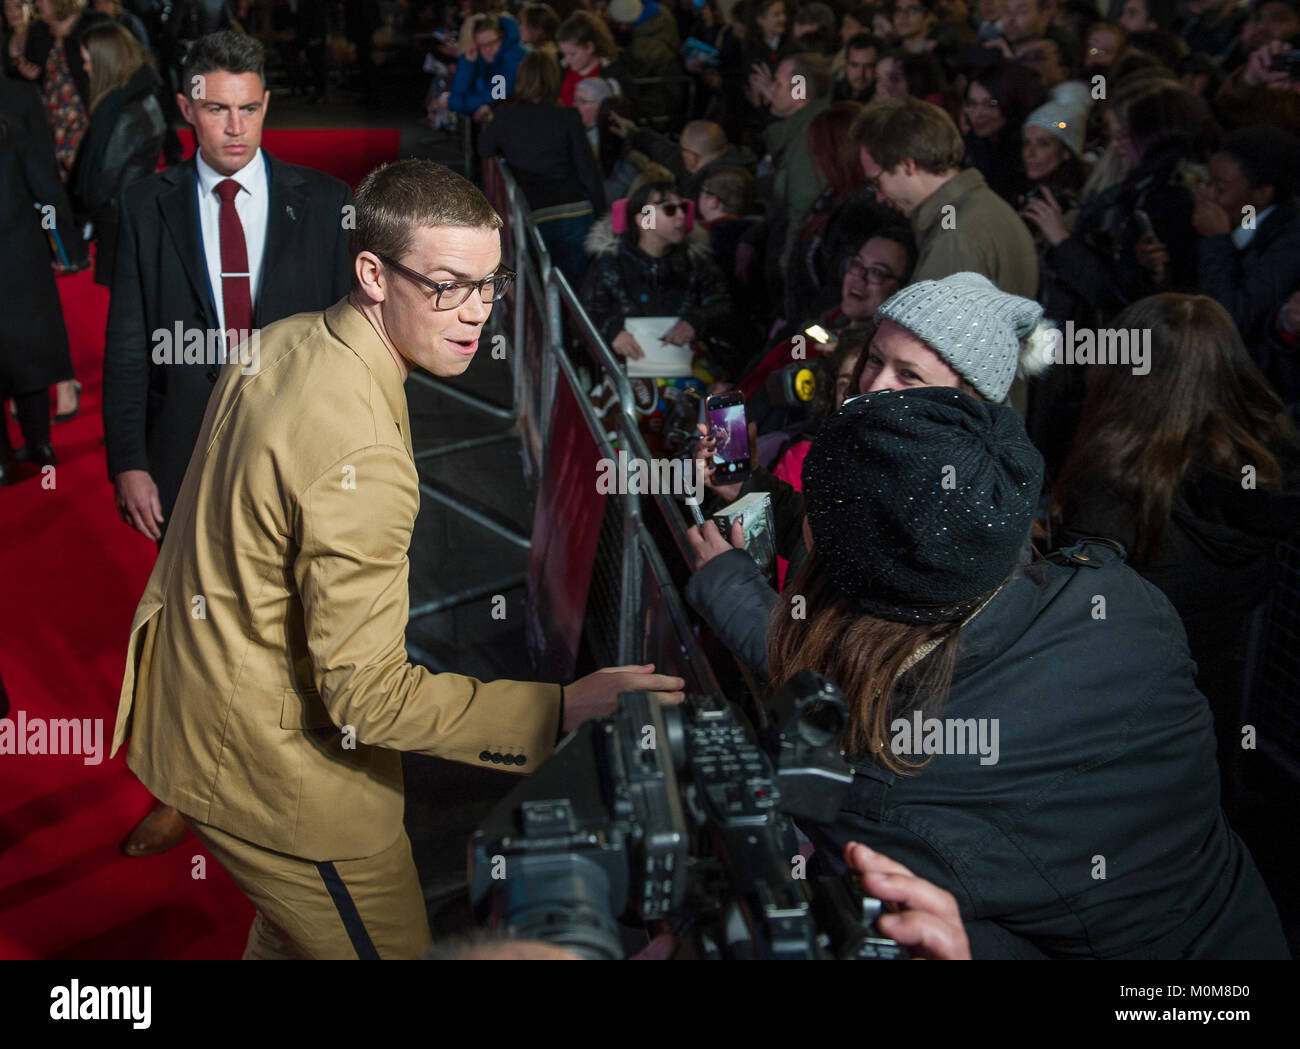 London, UK. 22nd Jan, 2018. Will Poulter attends the 'Maze Runner: The Death Cure' film premiere, London, - Stock Image